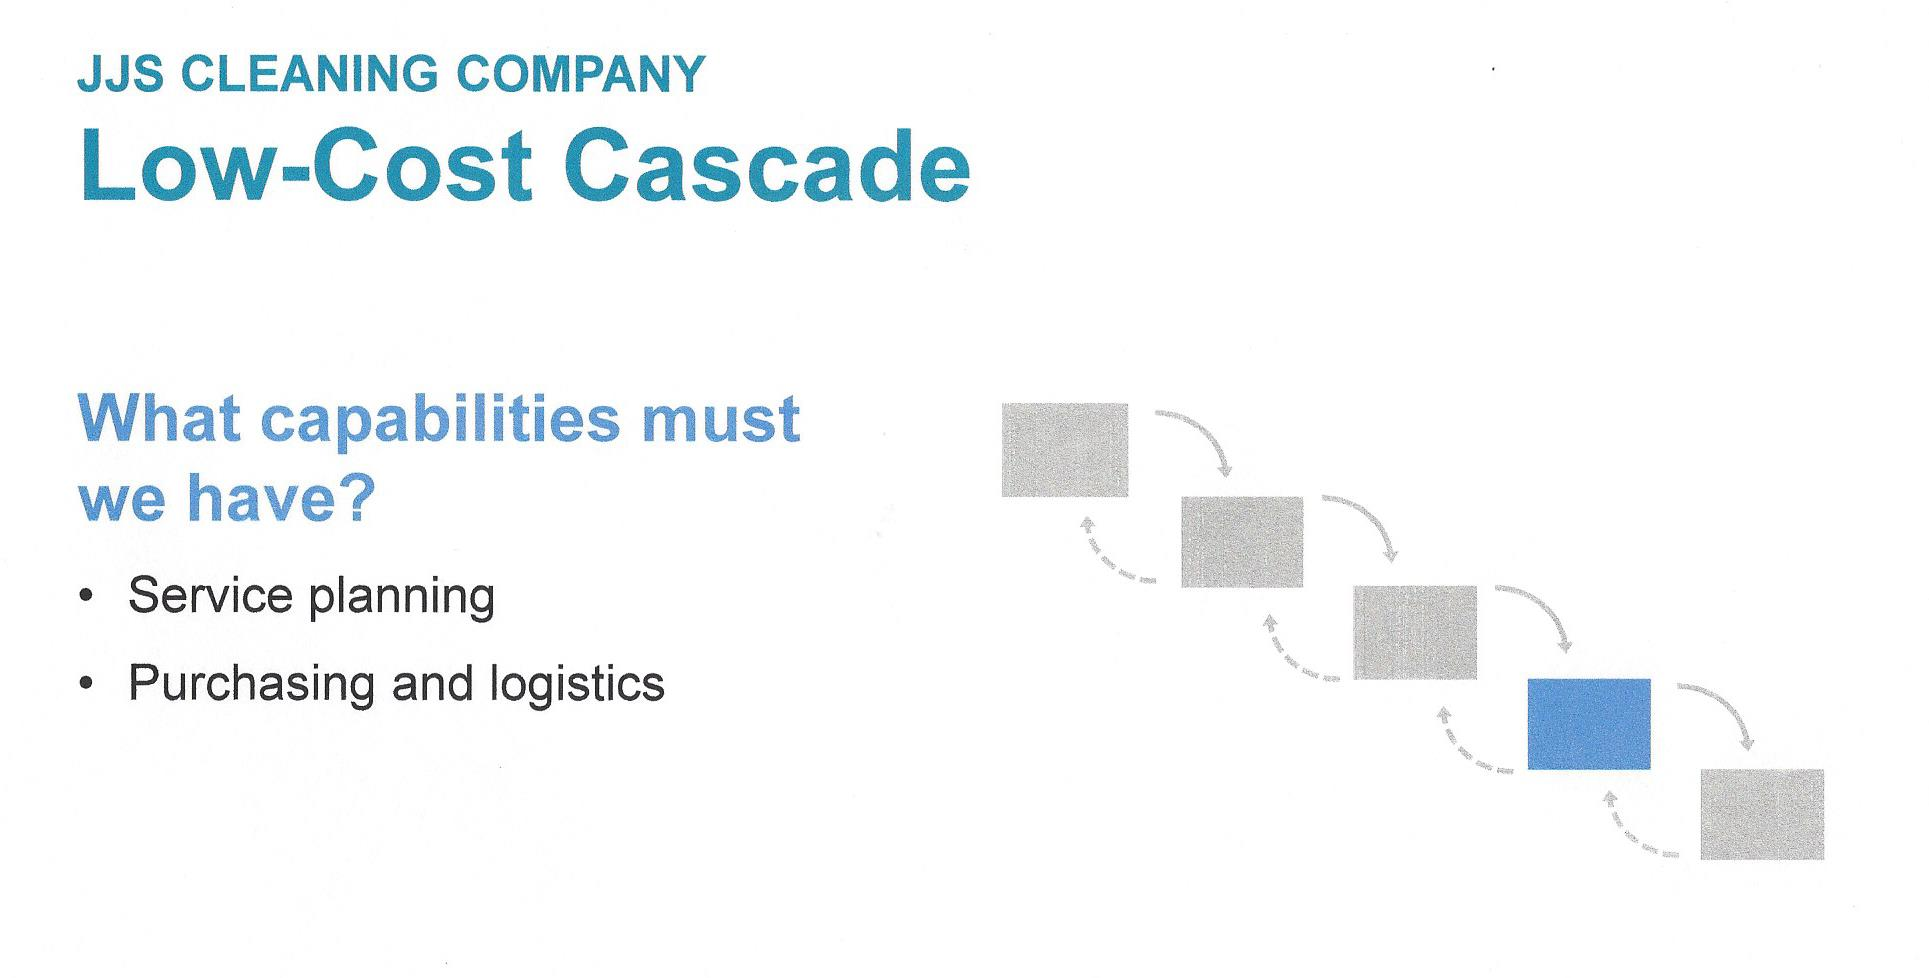 Play to Win - Low-Cost Cascade - Capabilities